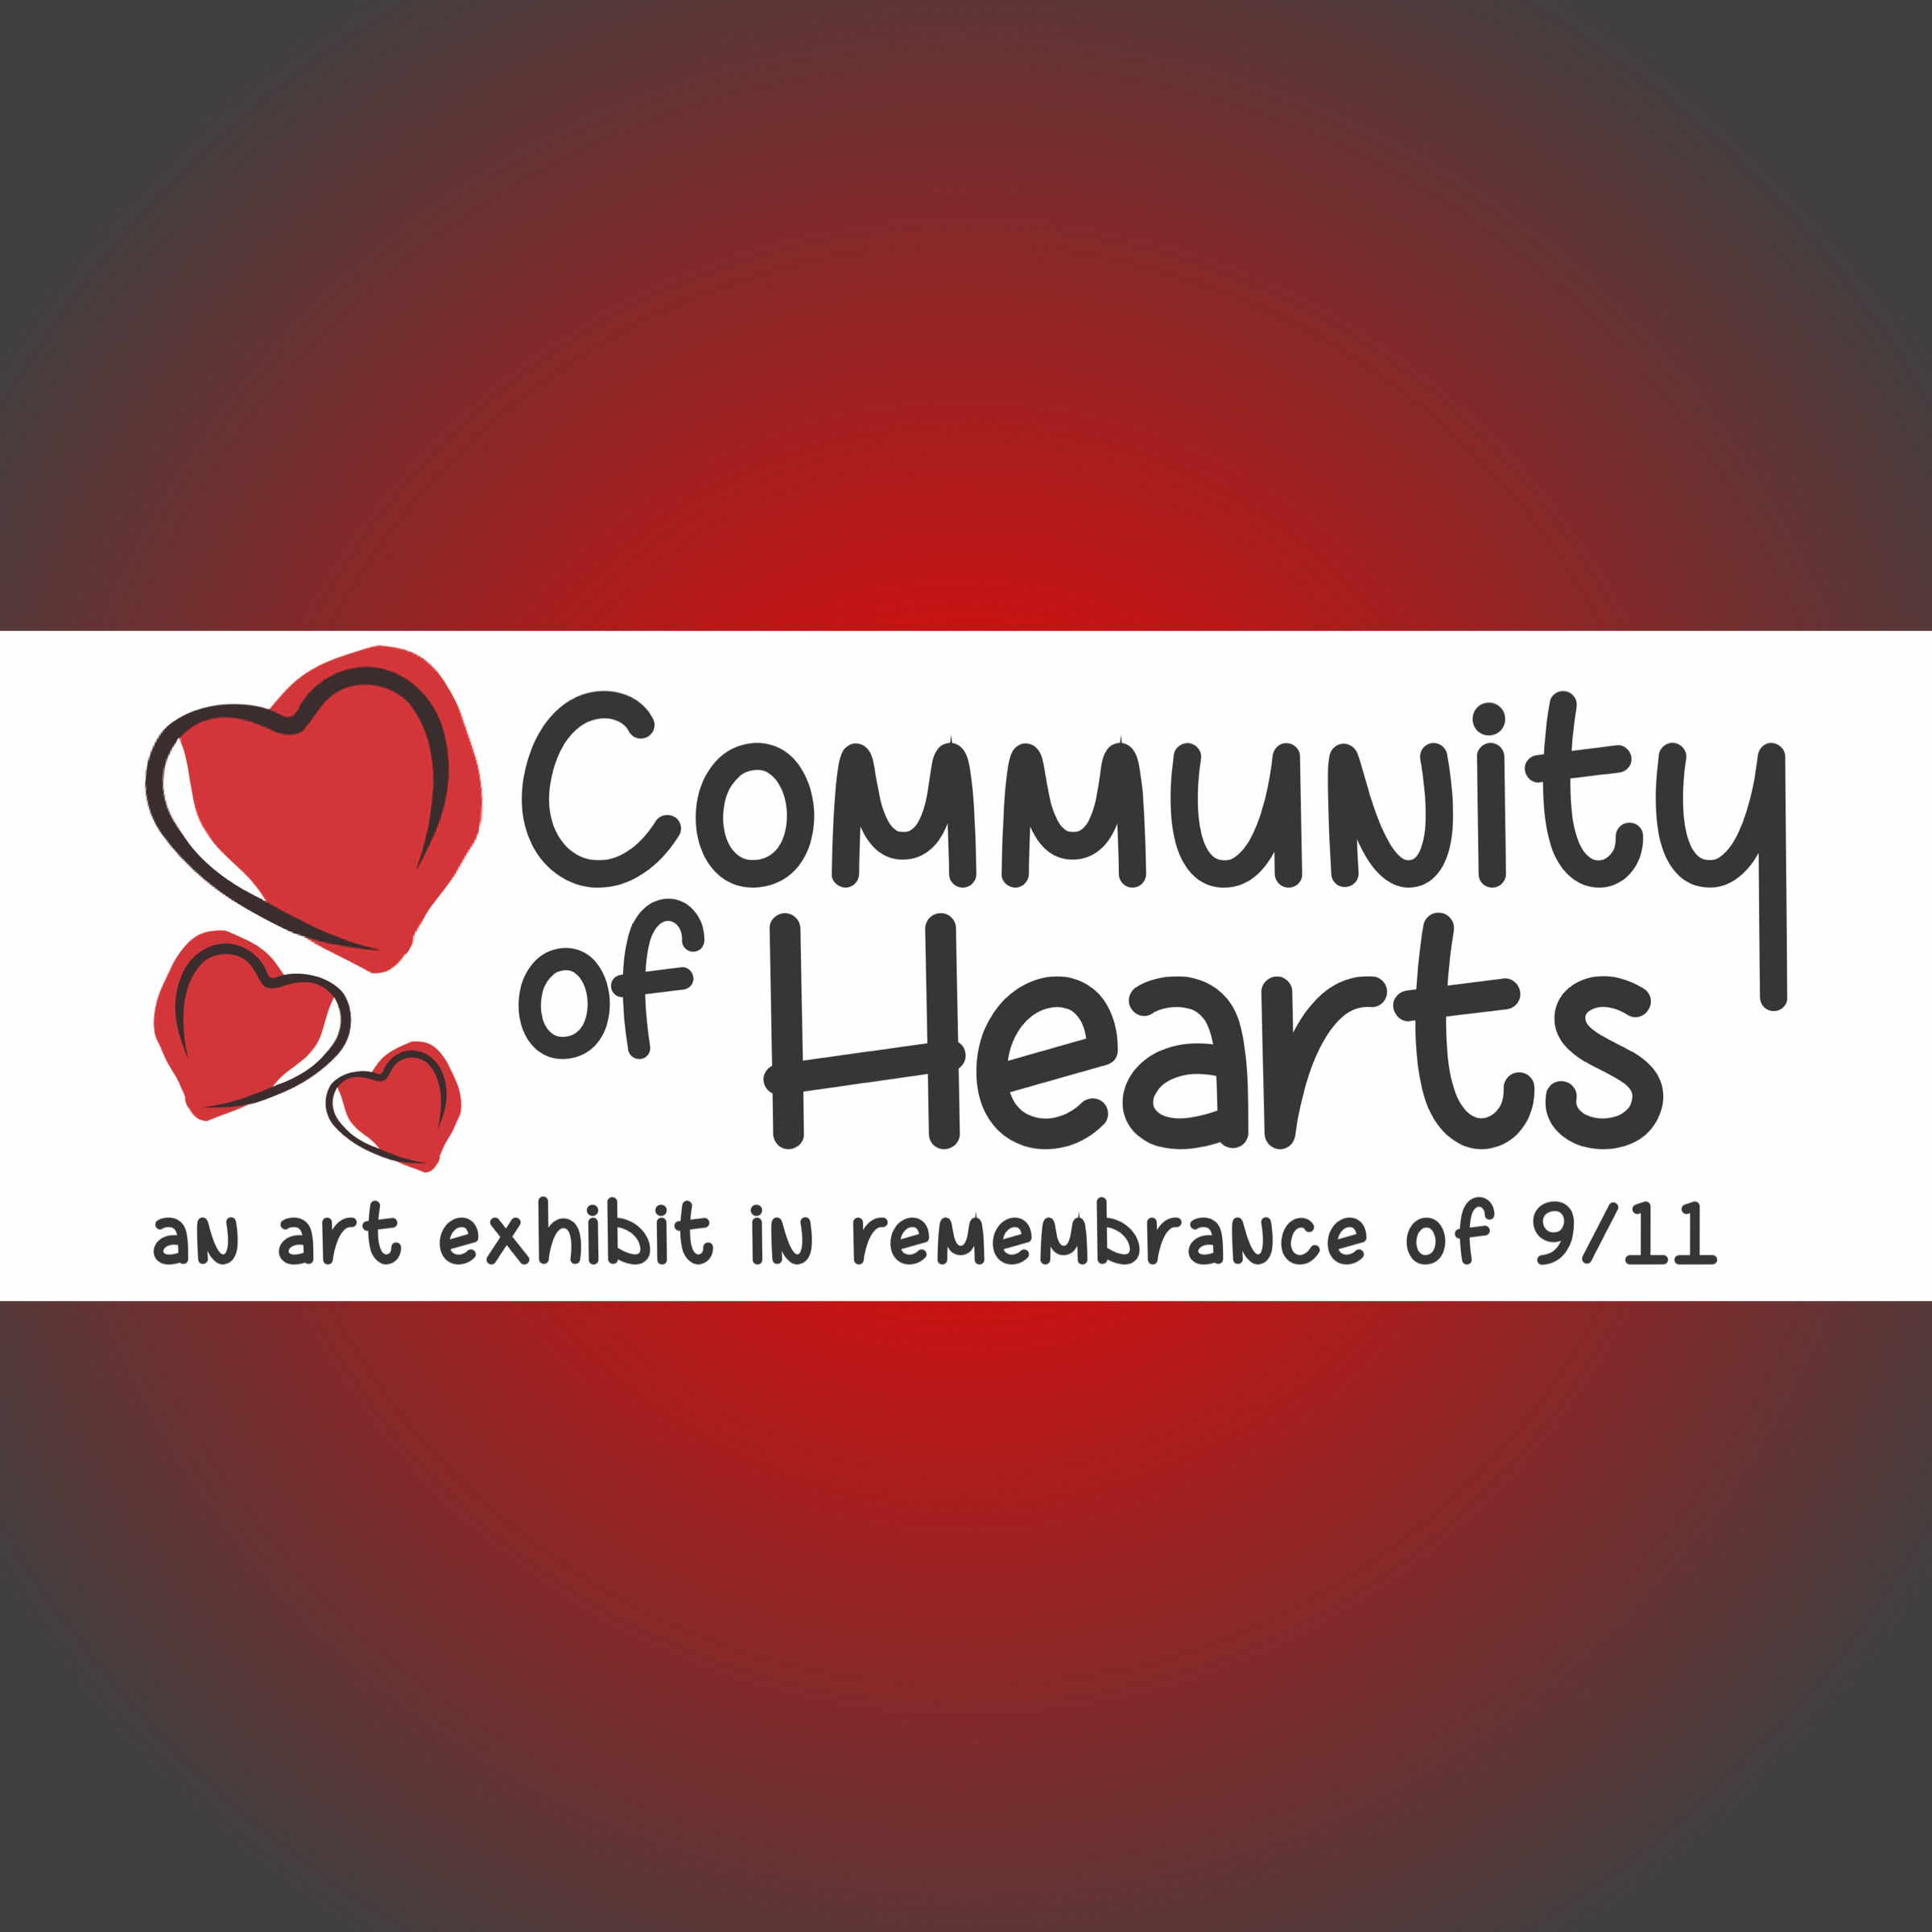 Community of Hearts: an art exhibit in remembrance of 9/11 at Northport-East Northport Public Library